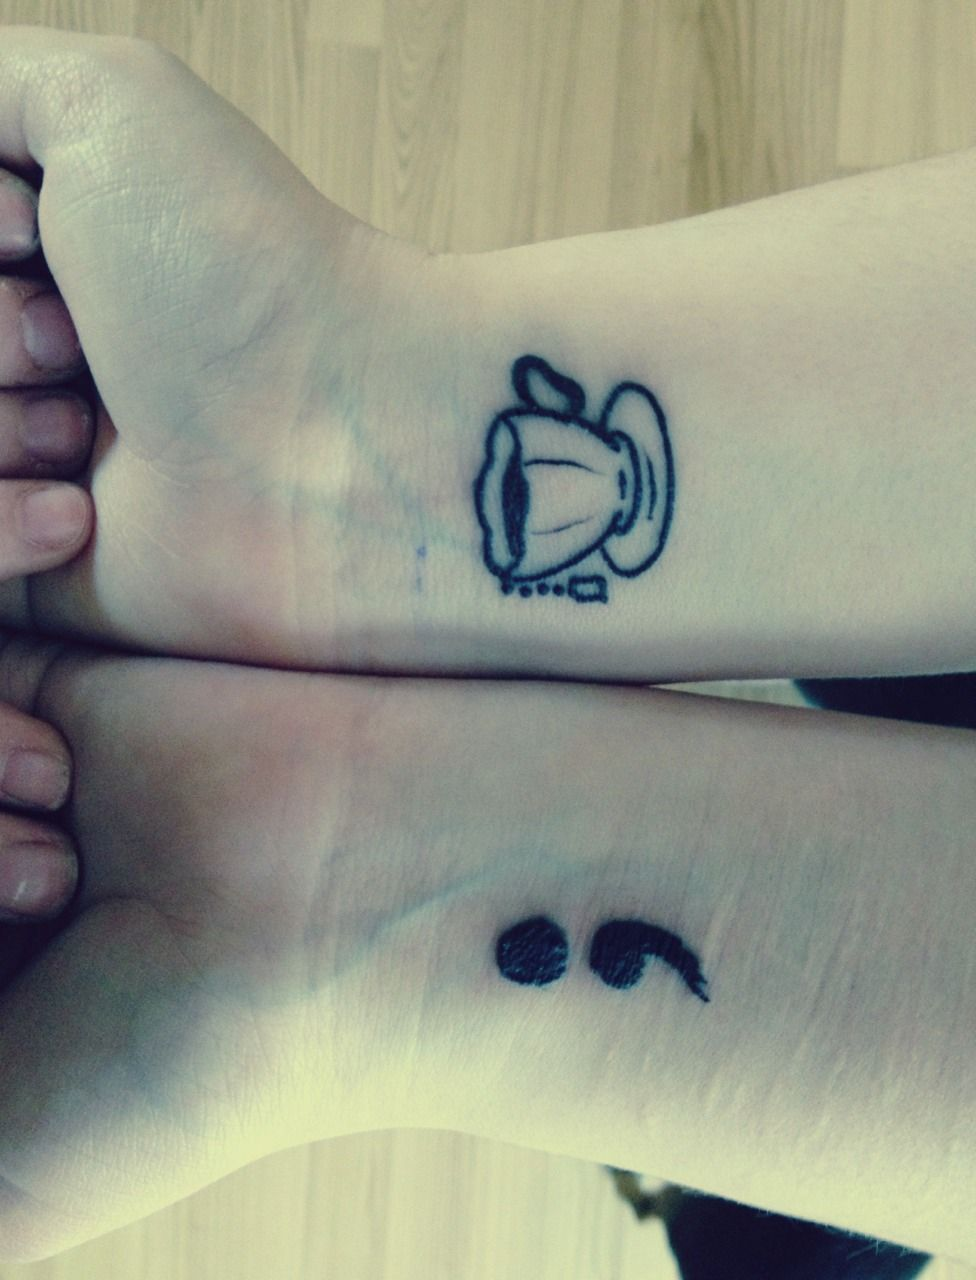 Teacup tattoo idea | Tattoo Ideas | Pinterest | Teacup tattoo ...